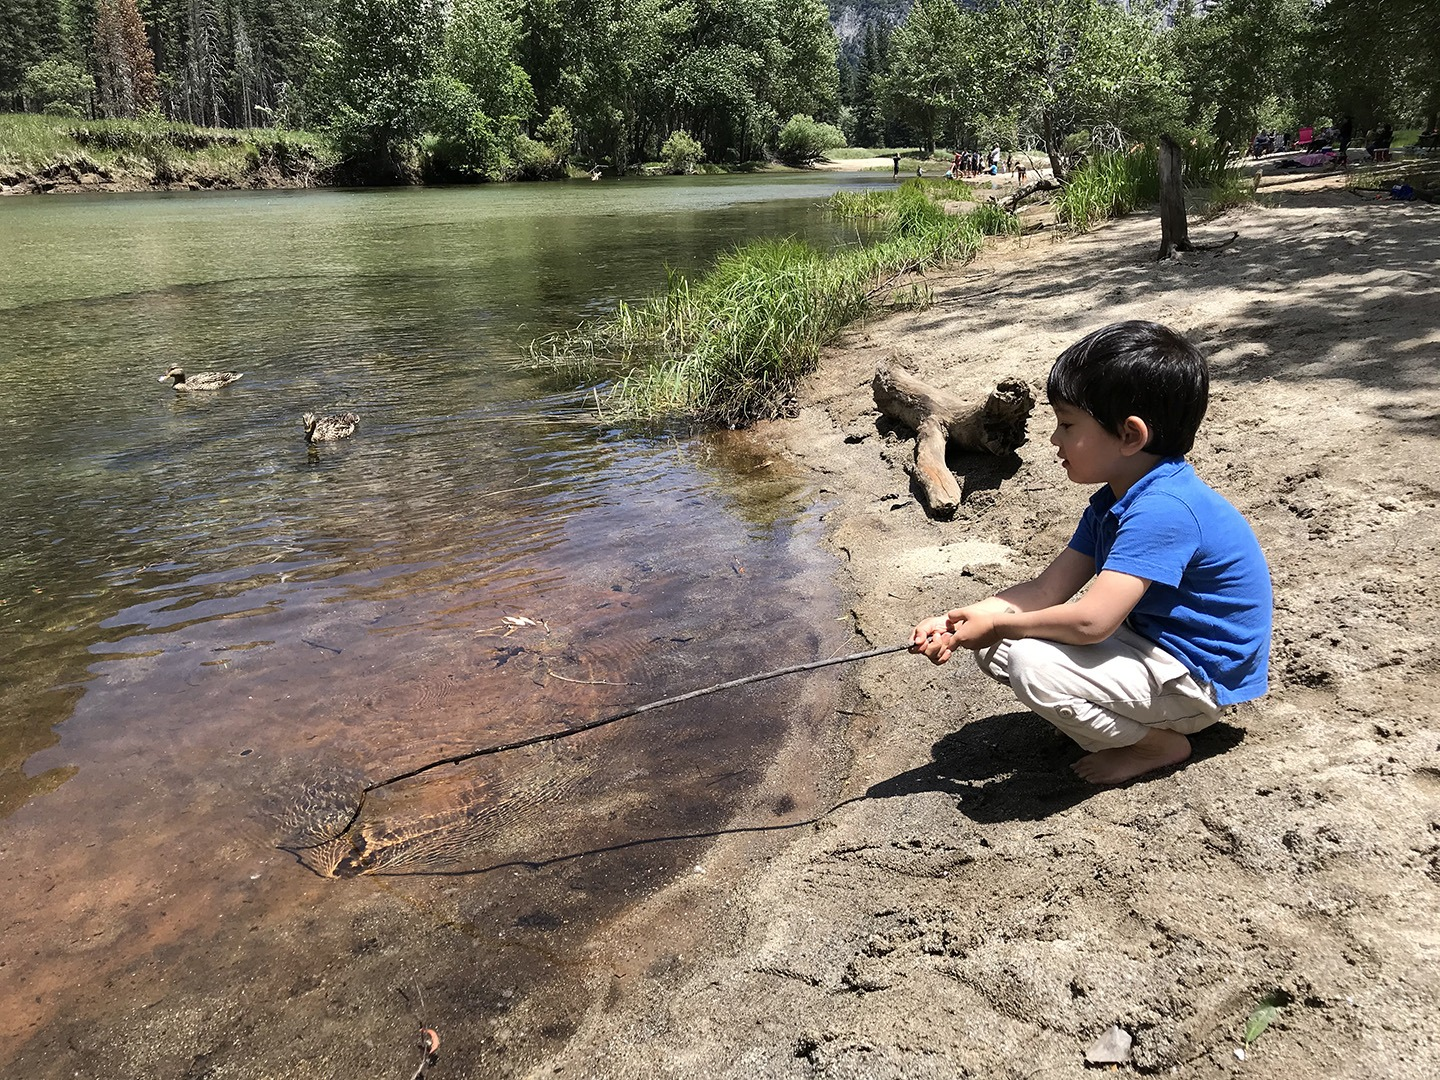 Owen, age 4, plays with a stick on the beach beside the Merced River in Yosemite Valley, as two ducks swim nearby.